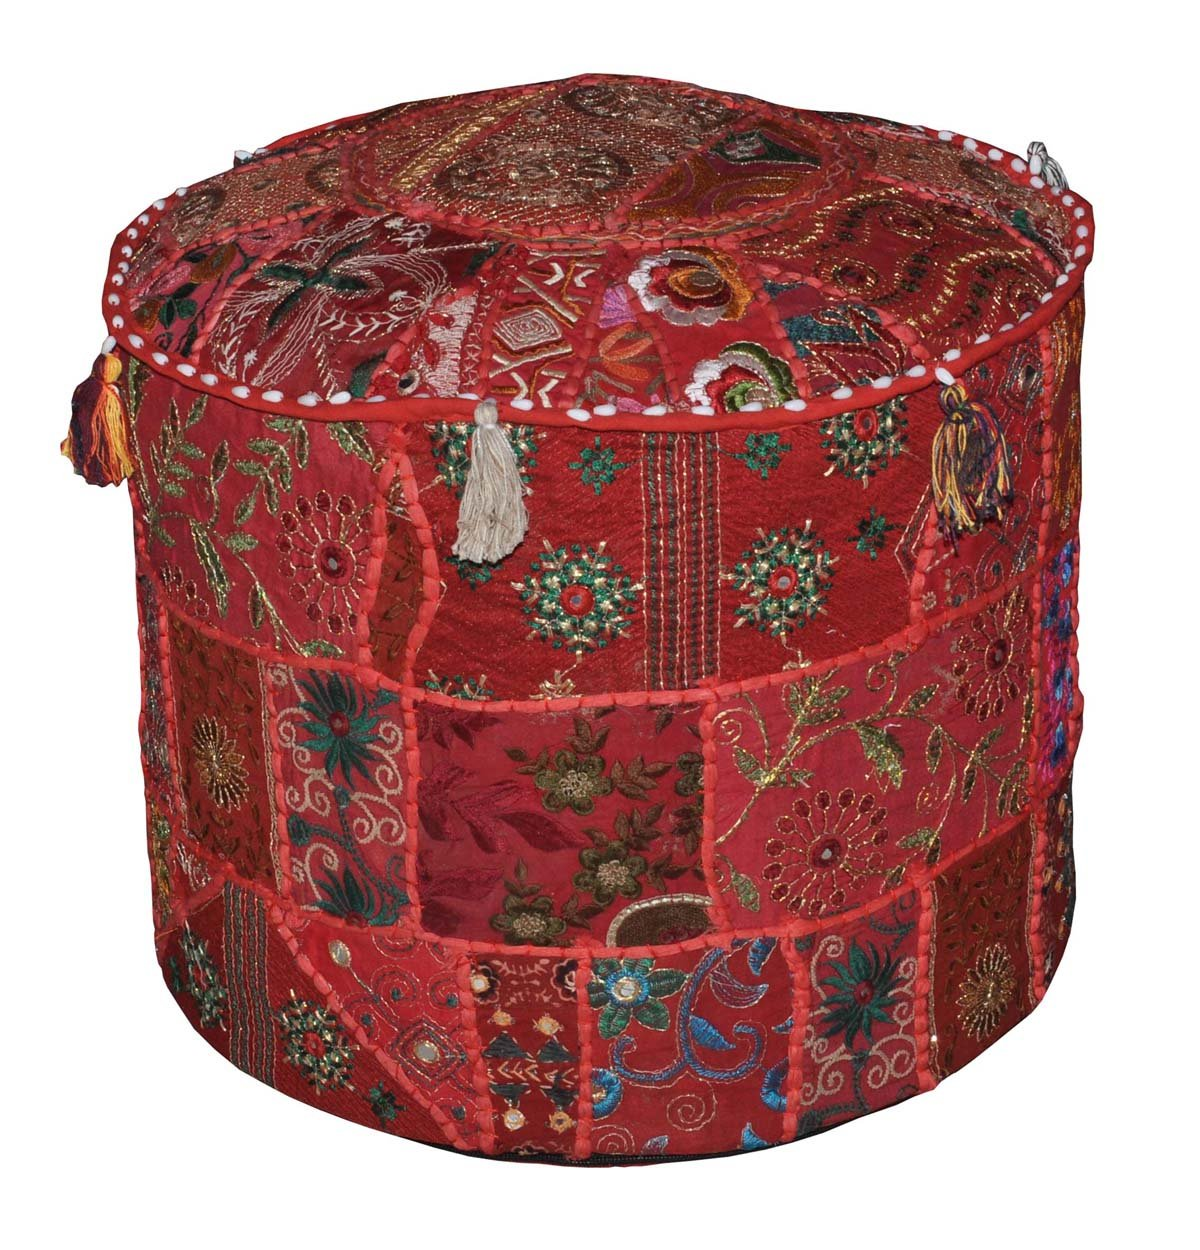 Indian Comfortable Floor Cotton Cushion Ottoman Cover Embellished With Patchwork and Embroidery Work, 46 X 33 Cm Marubhumi